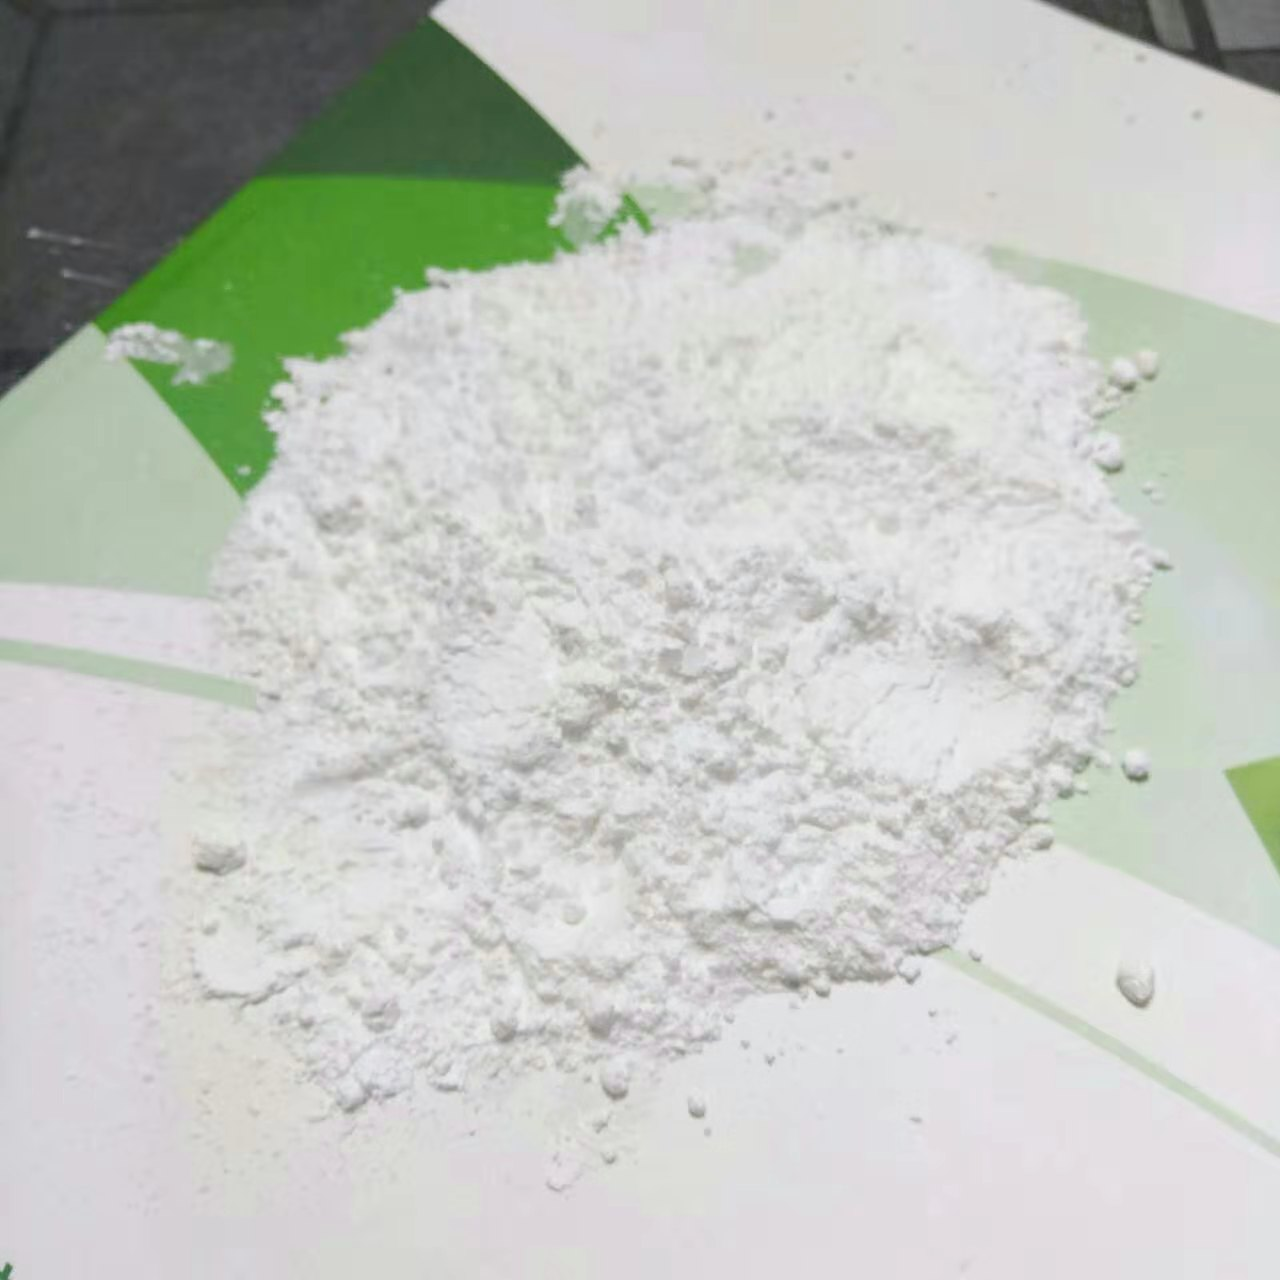 Magnesium Sulphate Monohydrate Powder